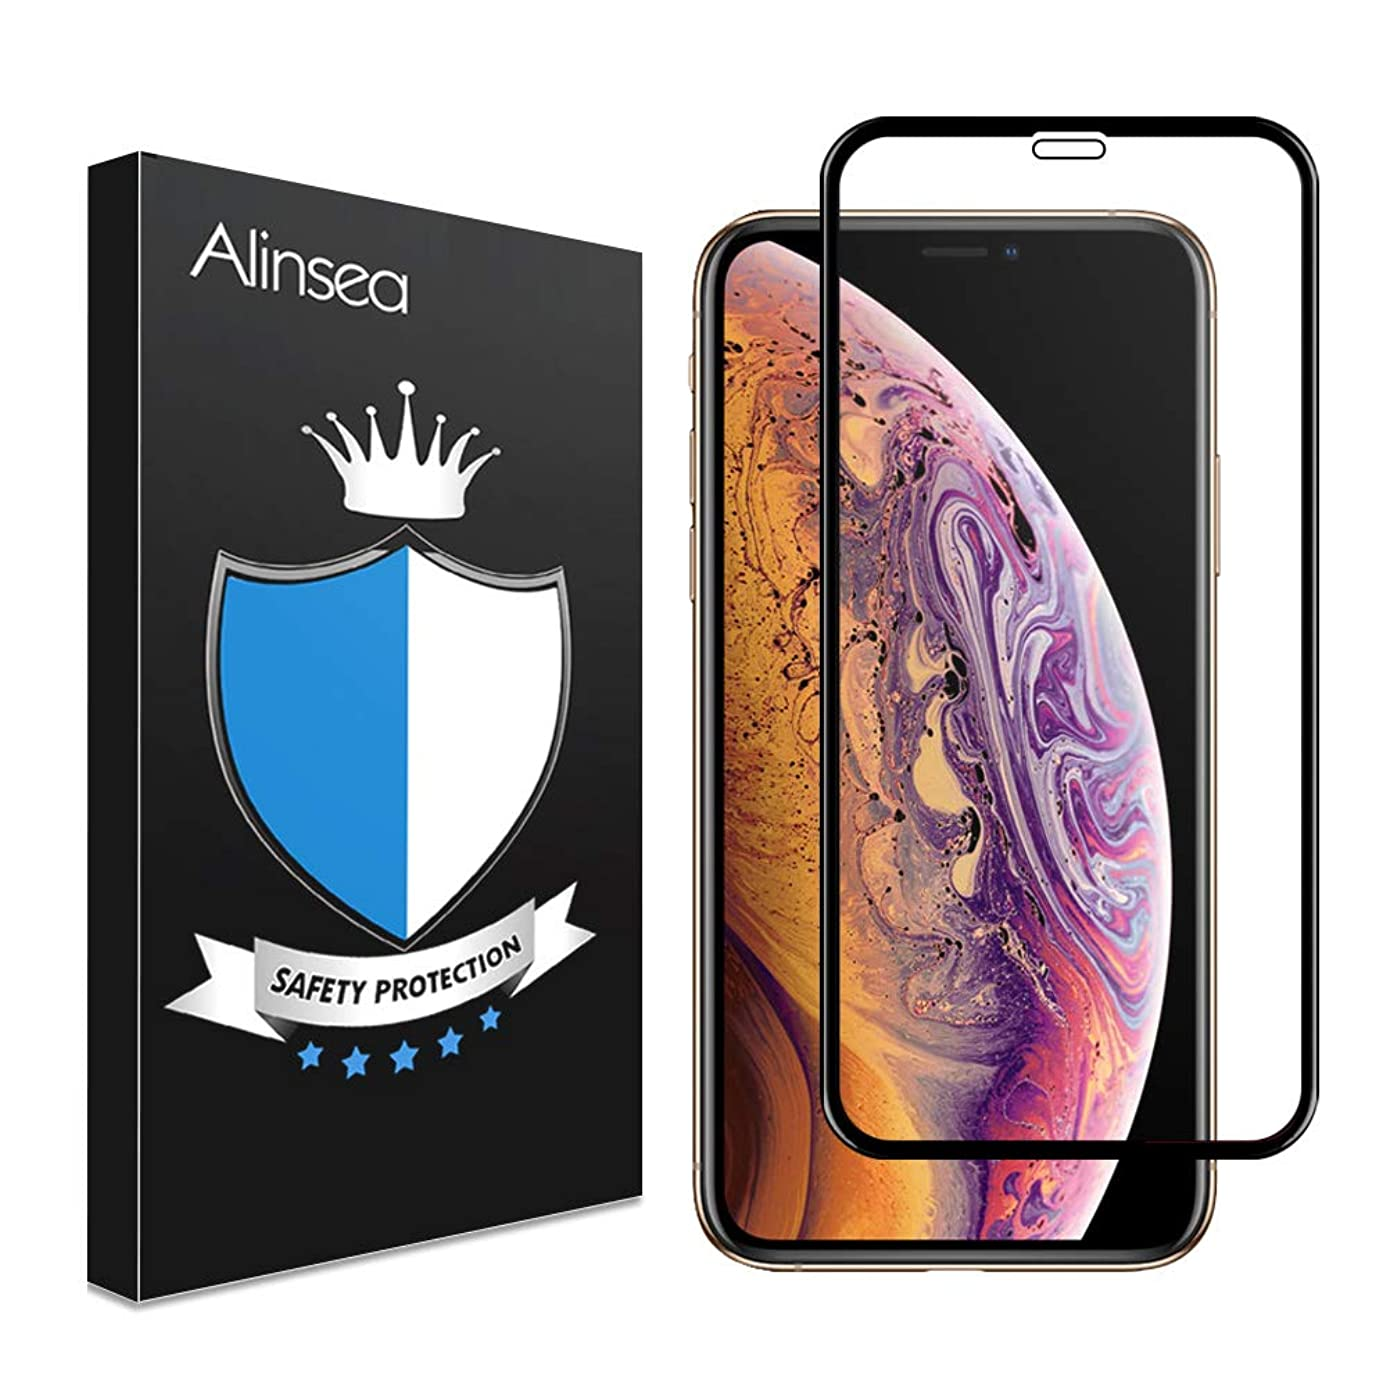 Alinsea Screen Protector Compatible for iPhone X/XS[Case Friendly, Full Coverage] 3D Tempered Glass [3D Touch Face ID Compatible] [Lifetime Replacement Warranty] Glass Protector for iPhone X/XS